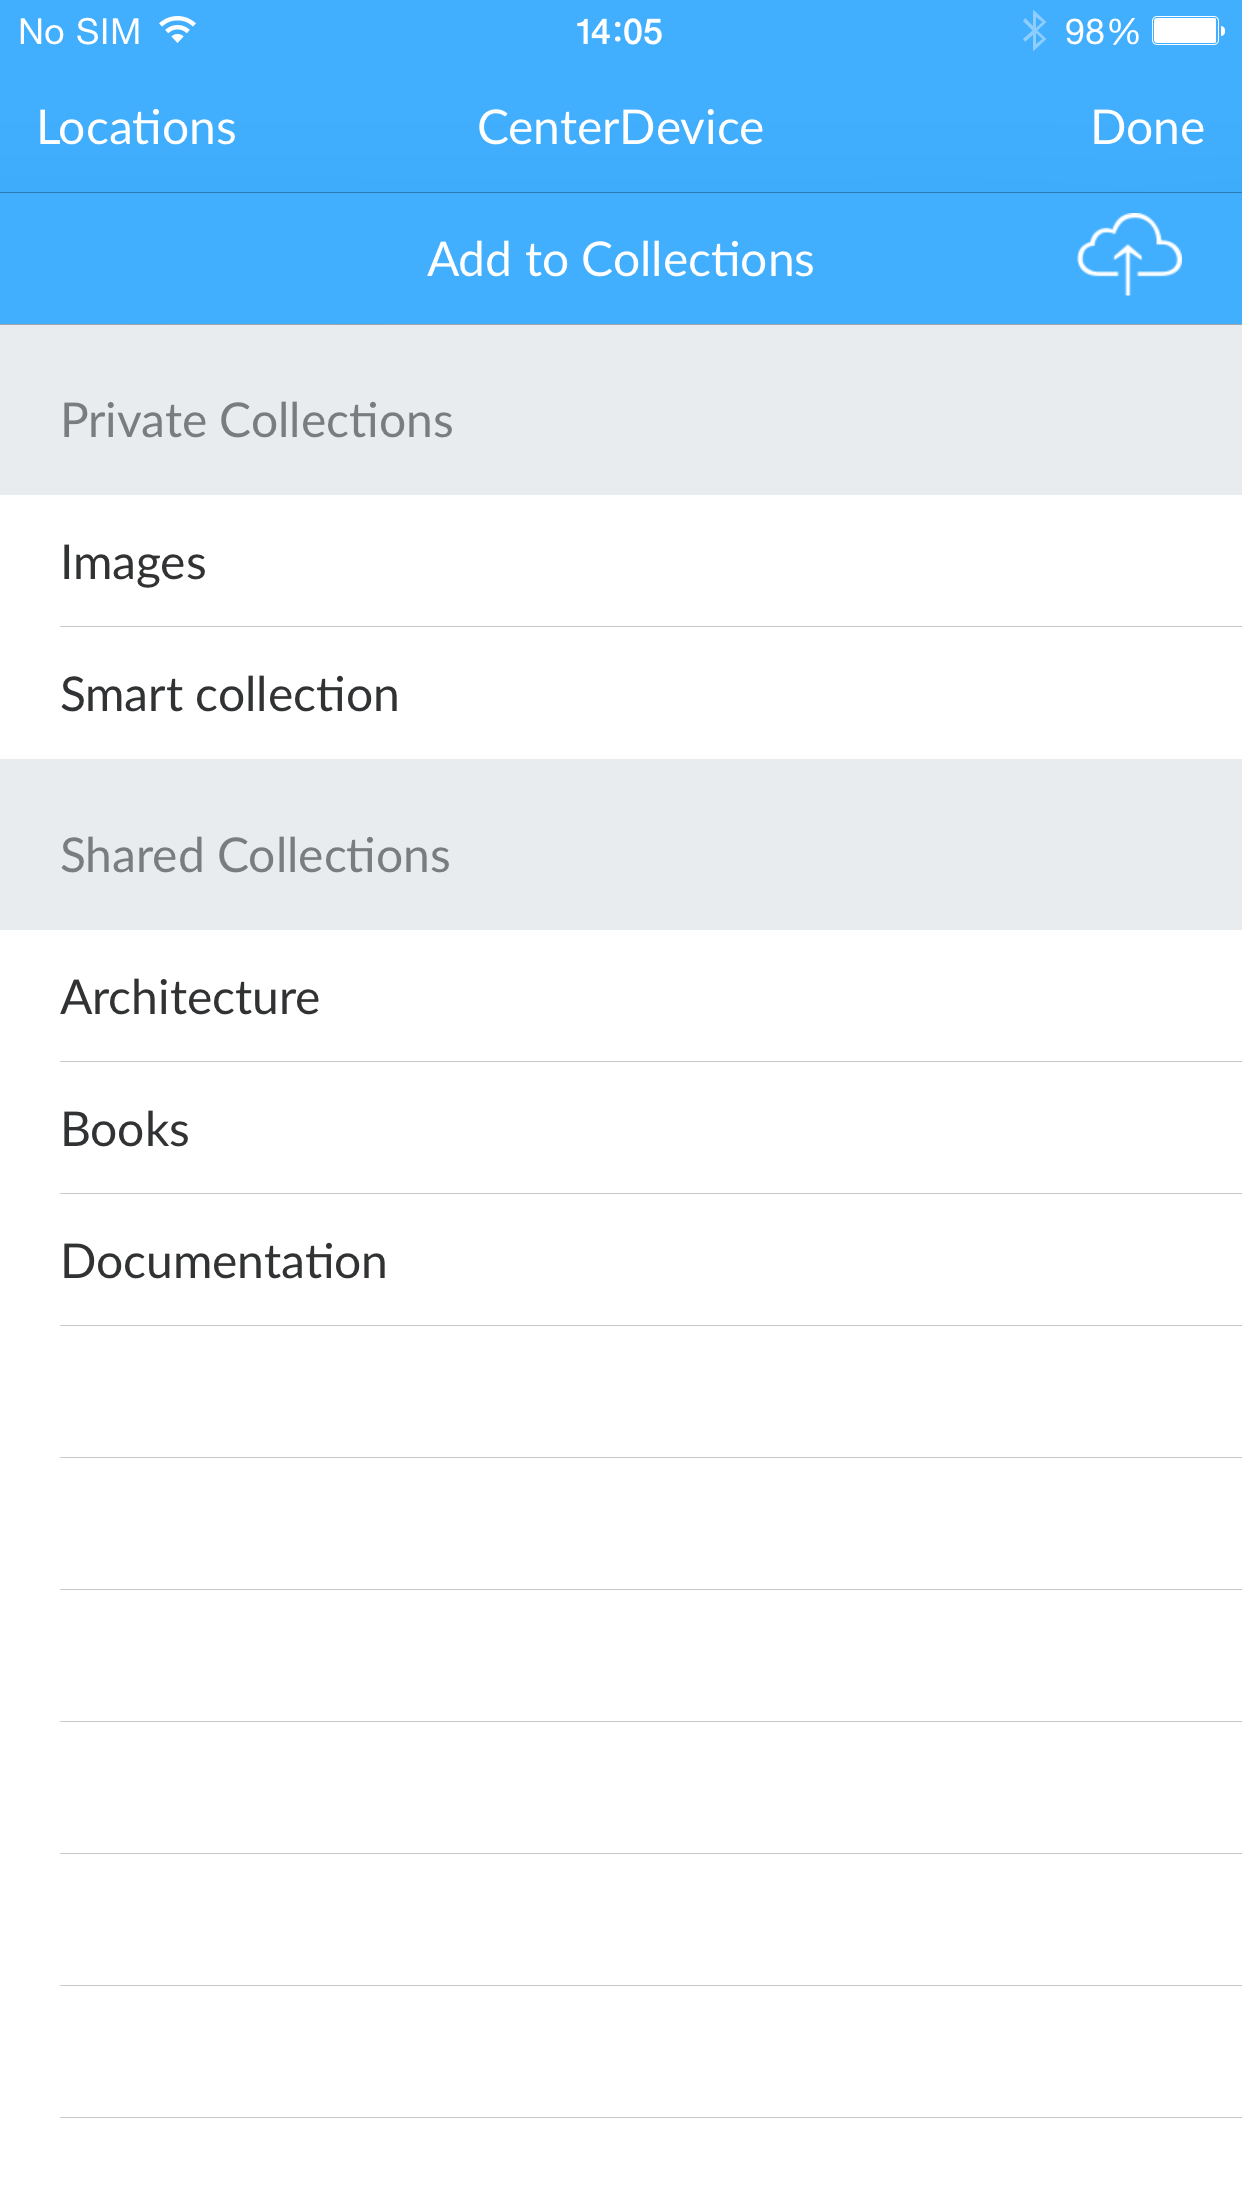 CenterDevice collections screen